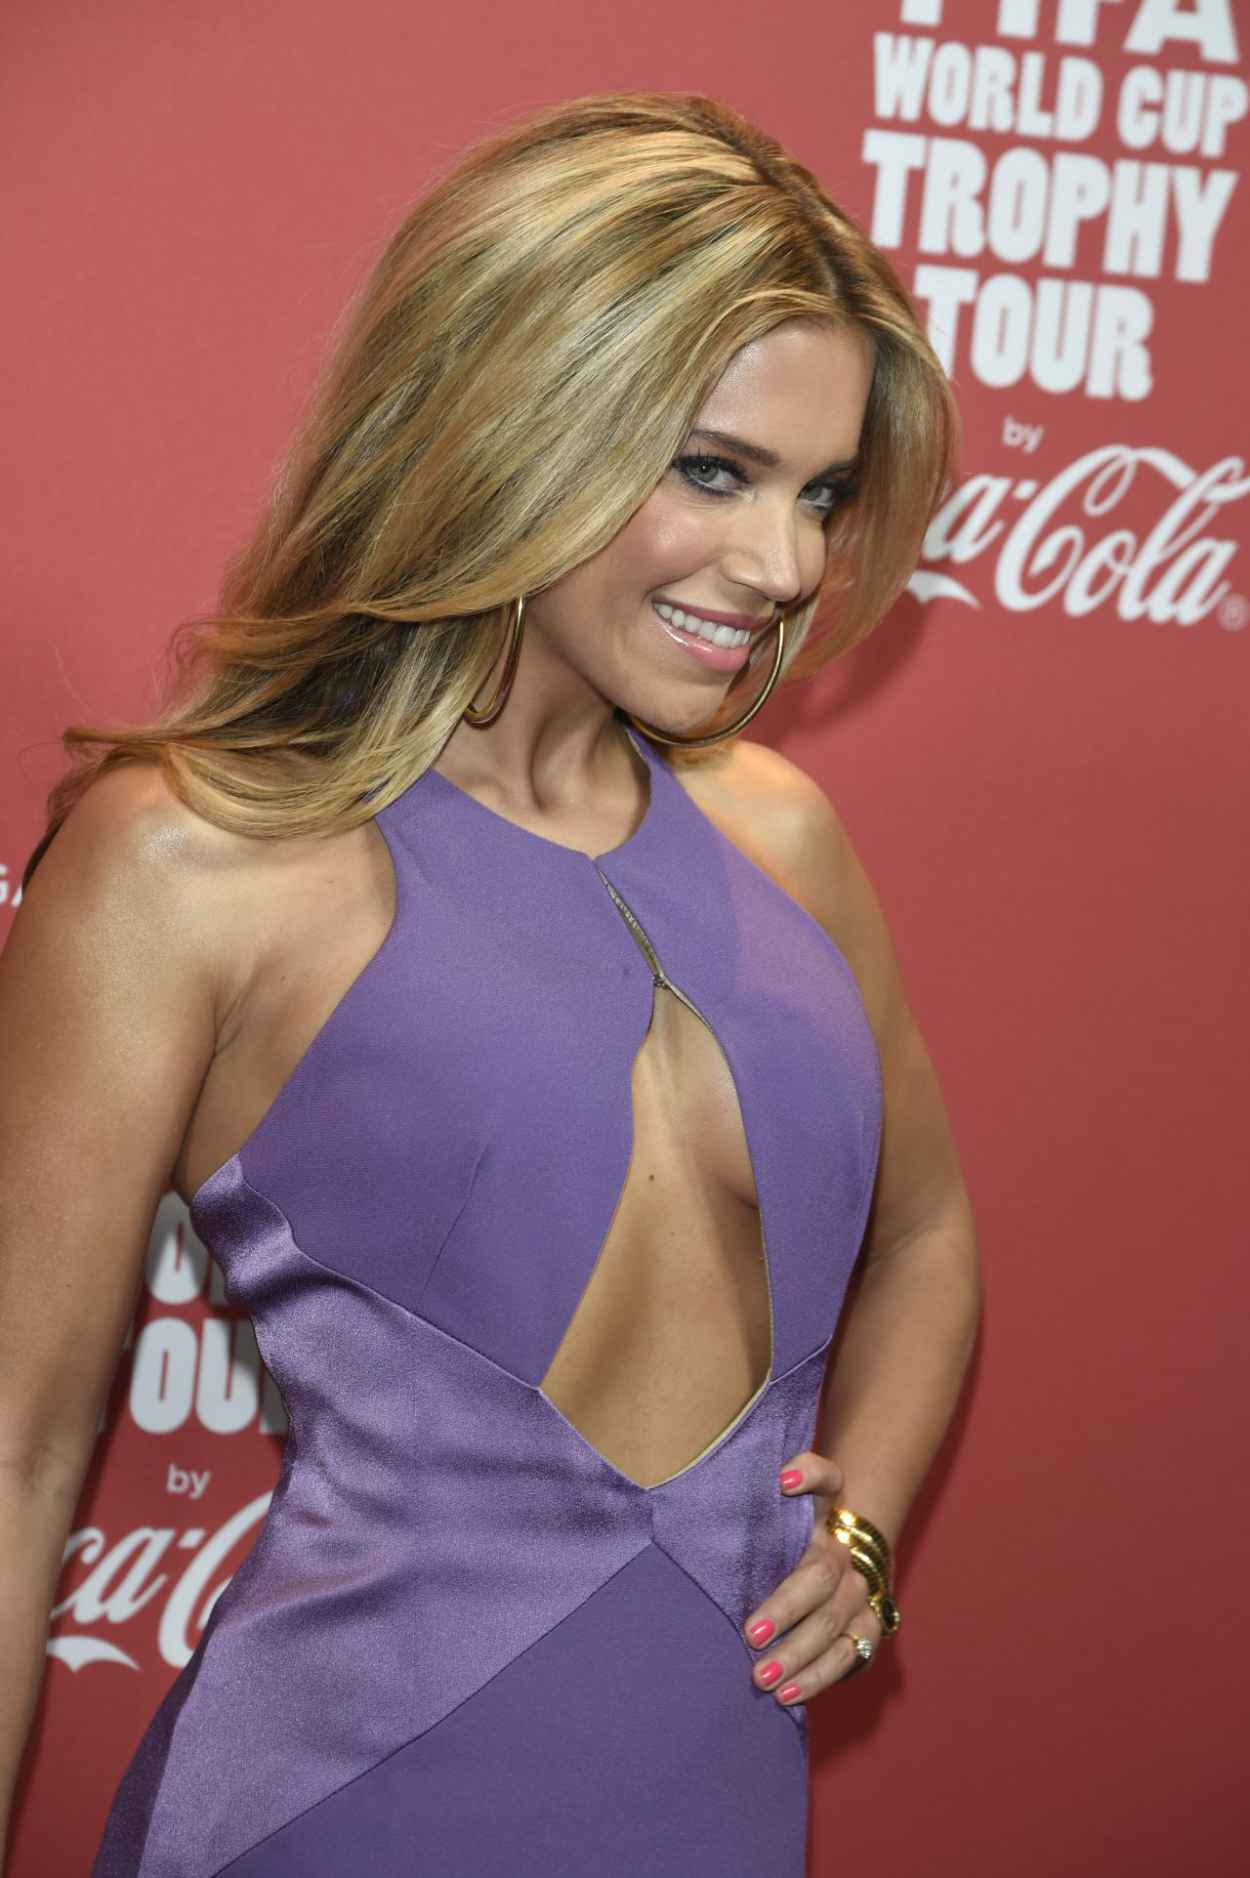 Sylvie Meis - Gala Night of FIFA World Cup Trophy Tour in Berlin (Germany) - March 2015-1